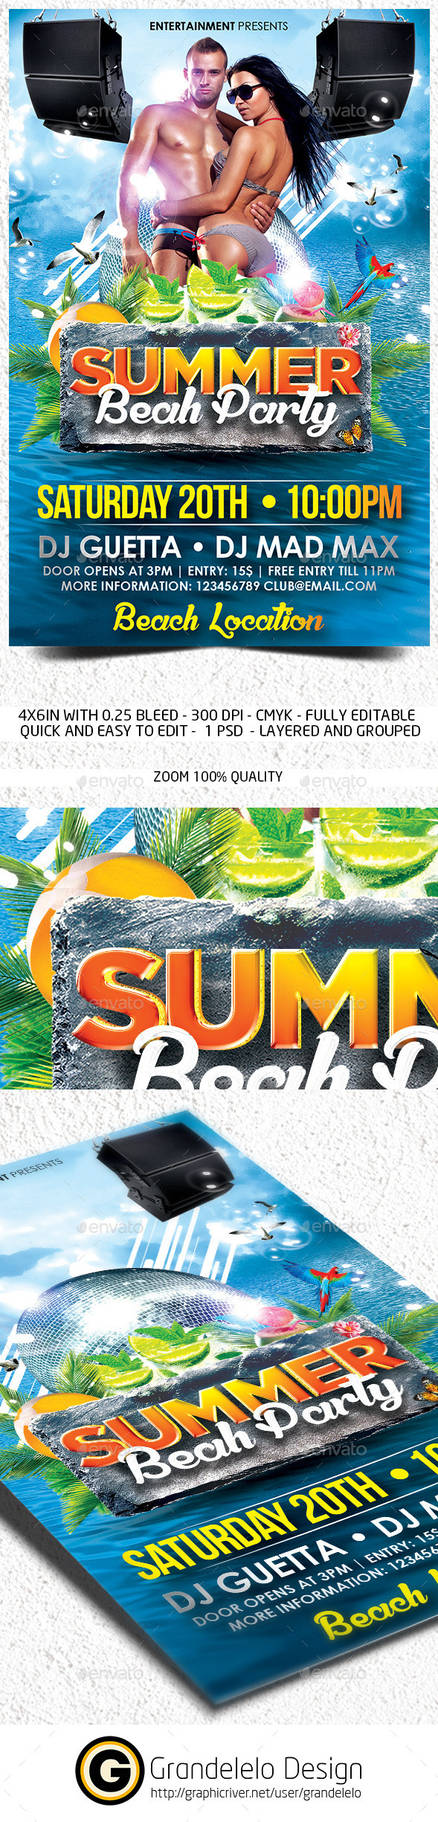 The Summer Beach Party Flyer Template